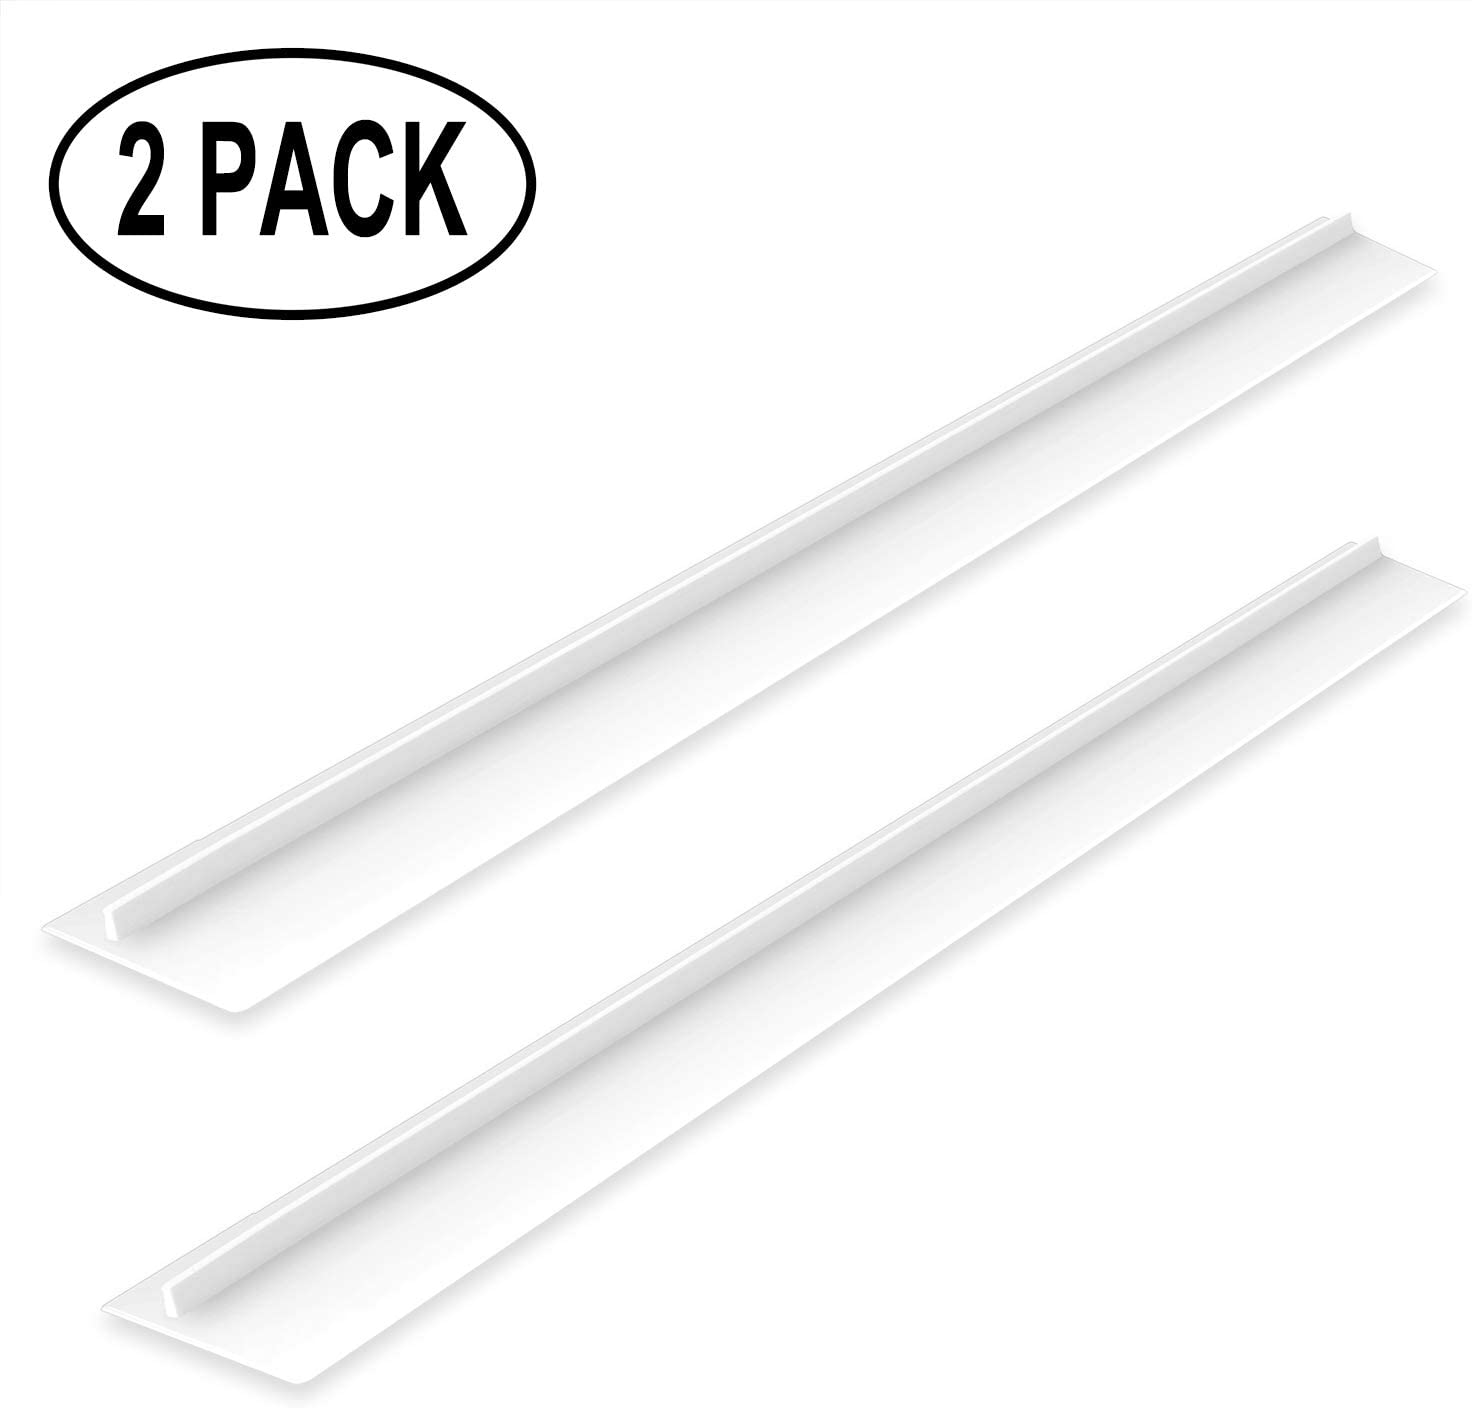 "mdairc Silicone Kitchen Stove Counter Gap Cover Wide & long Gap Filler, 21"", Seals Spills Between Appliances: Counter, Stovetop, Washing Machine, Oven, Washer, Dryer (White)"